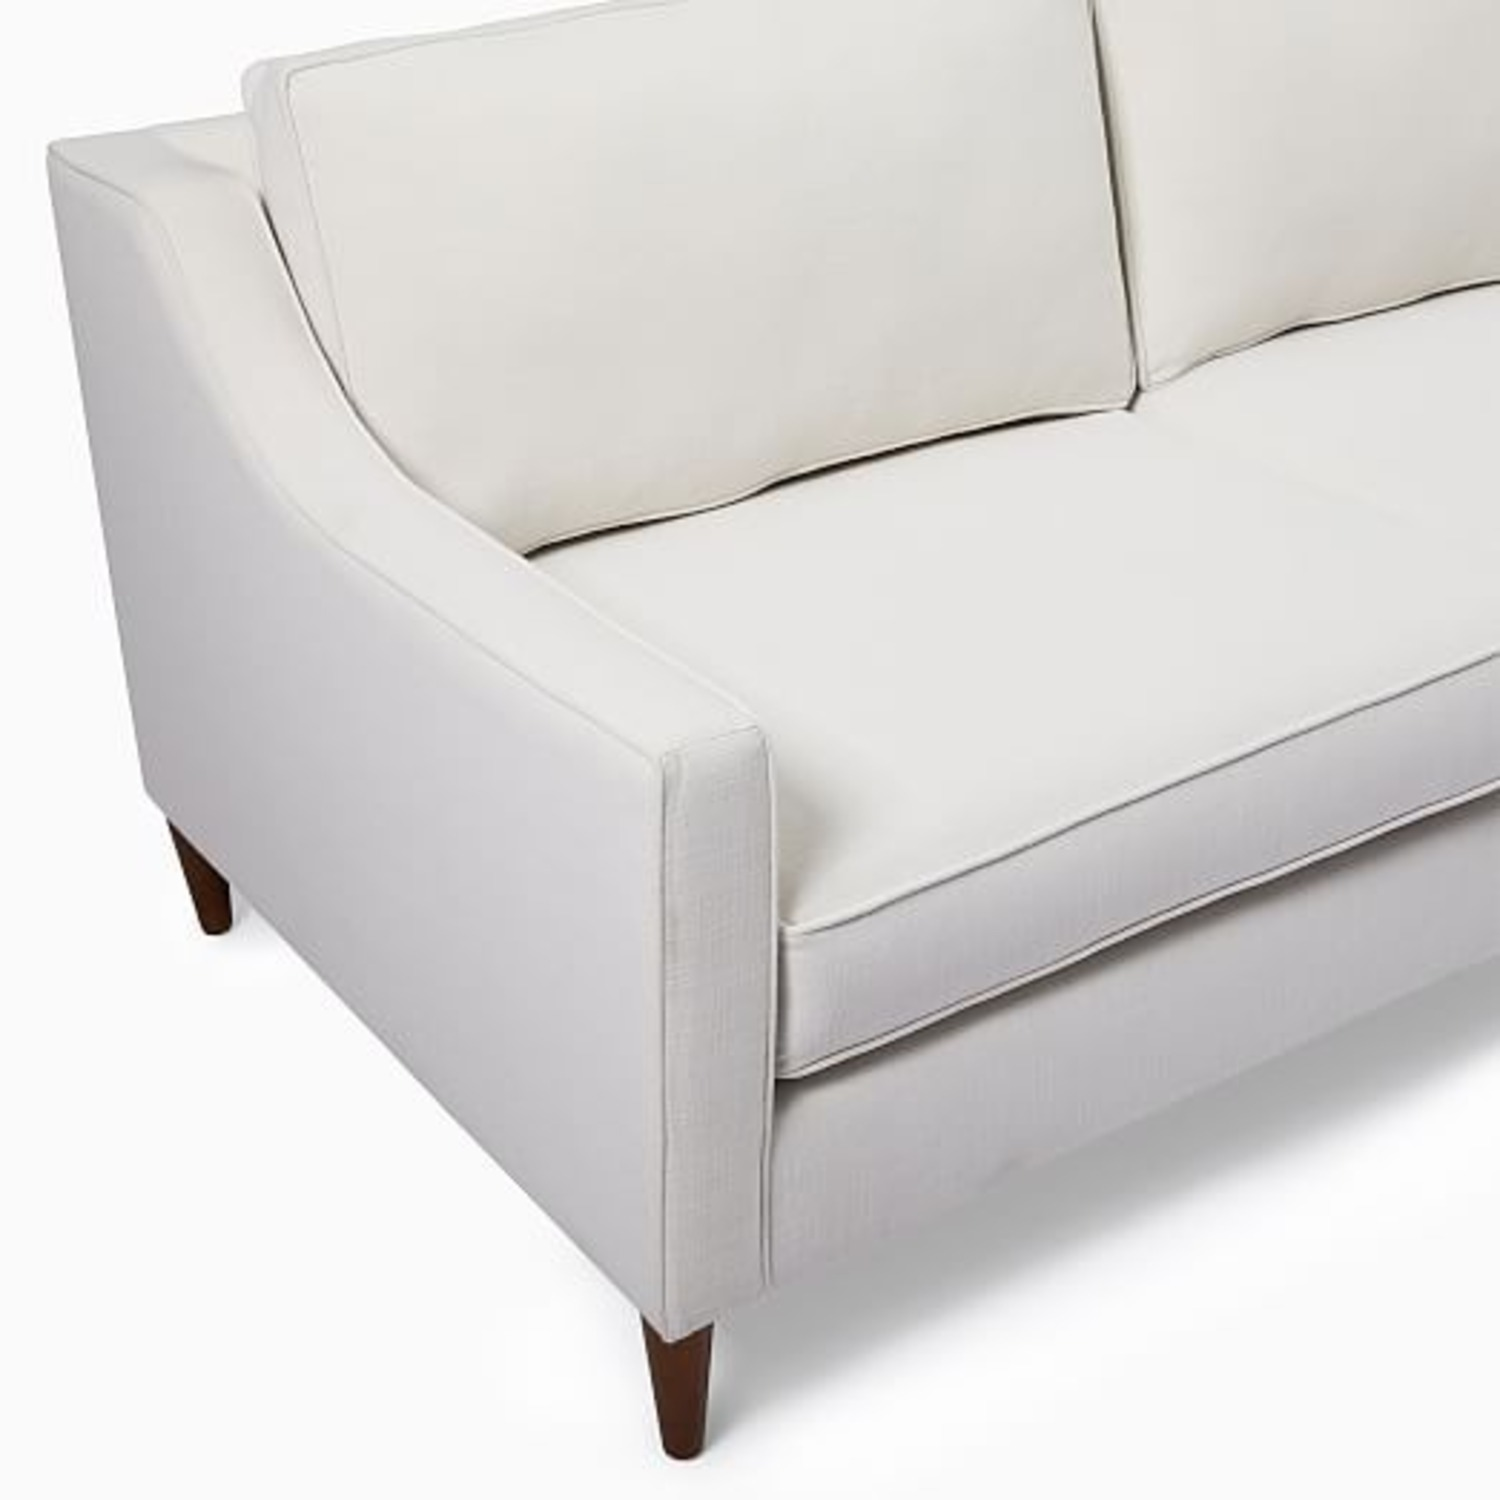 West Elm Piadge Sofa - image-3